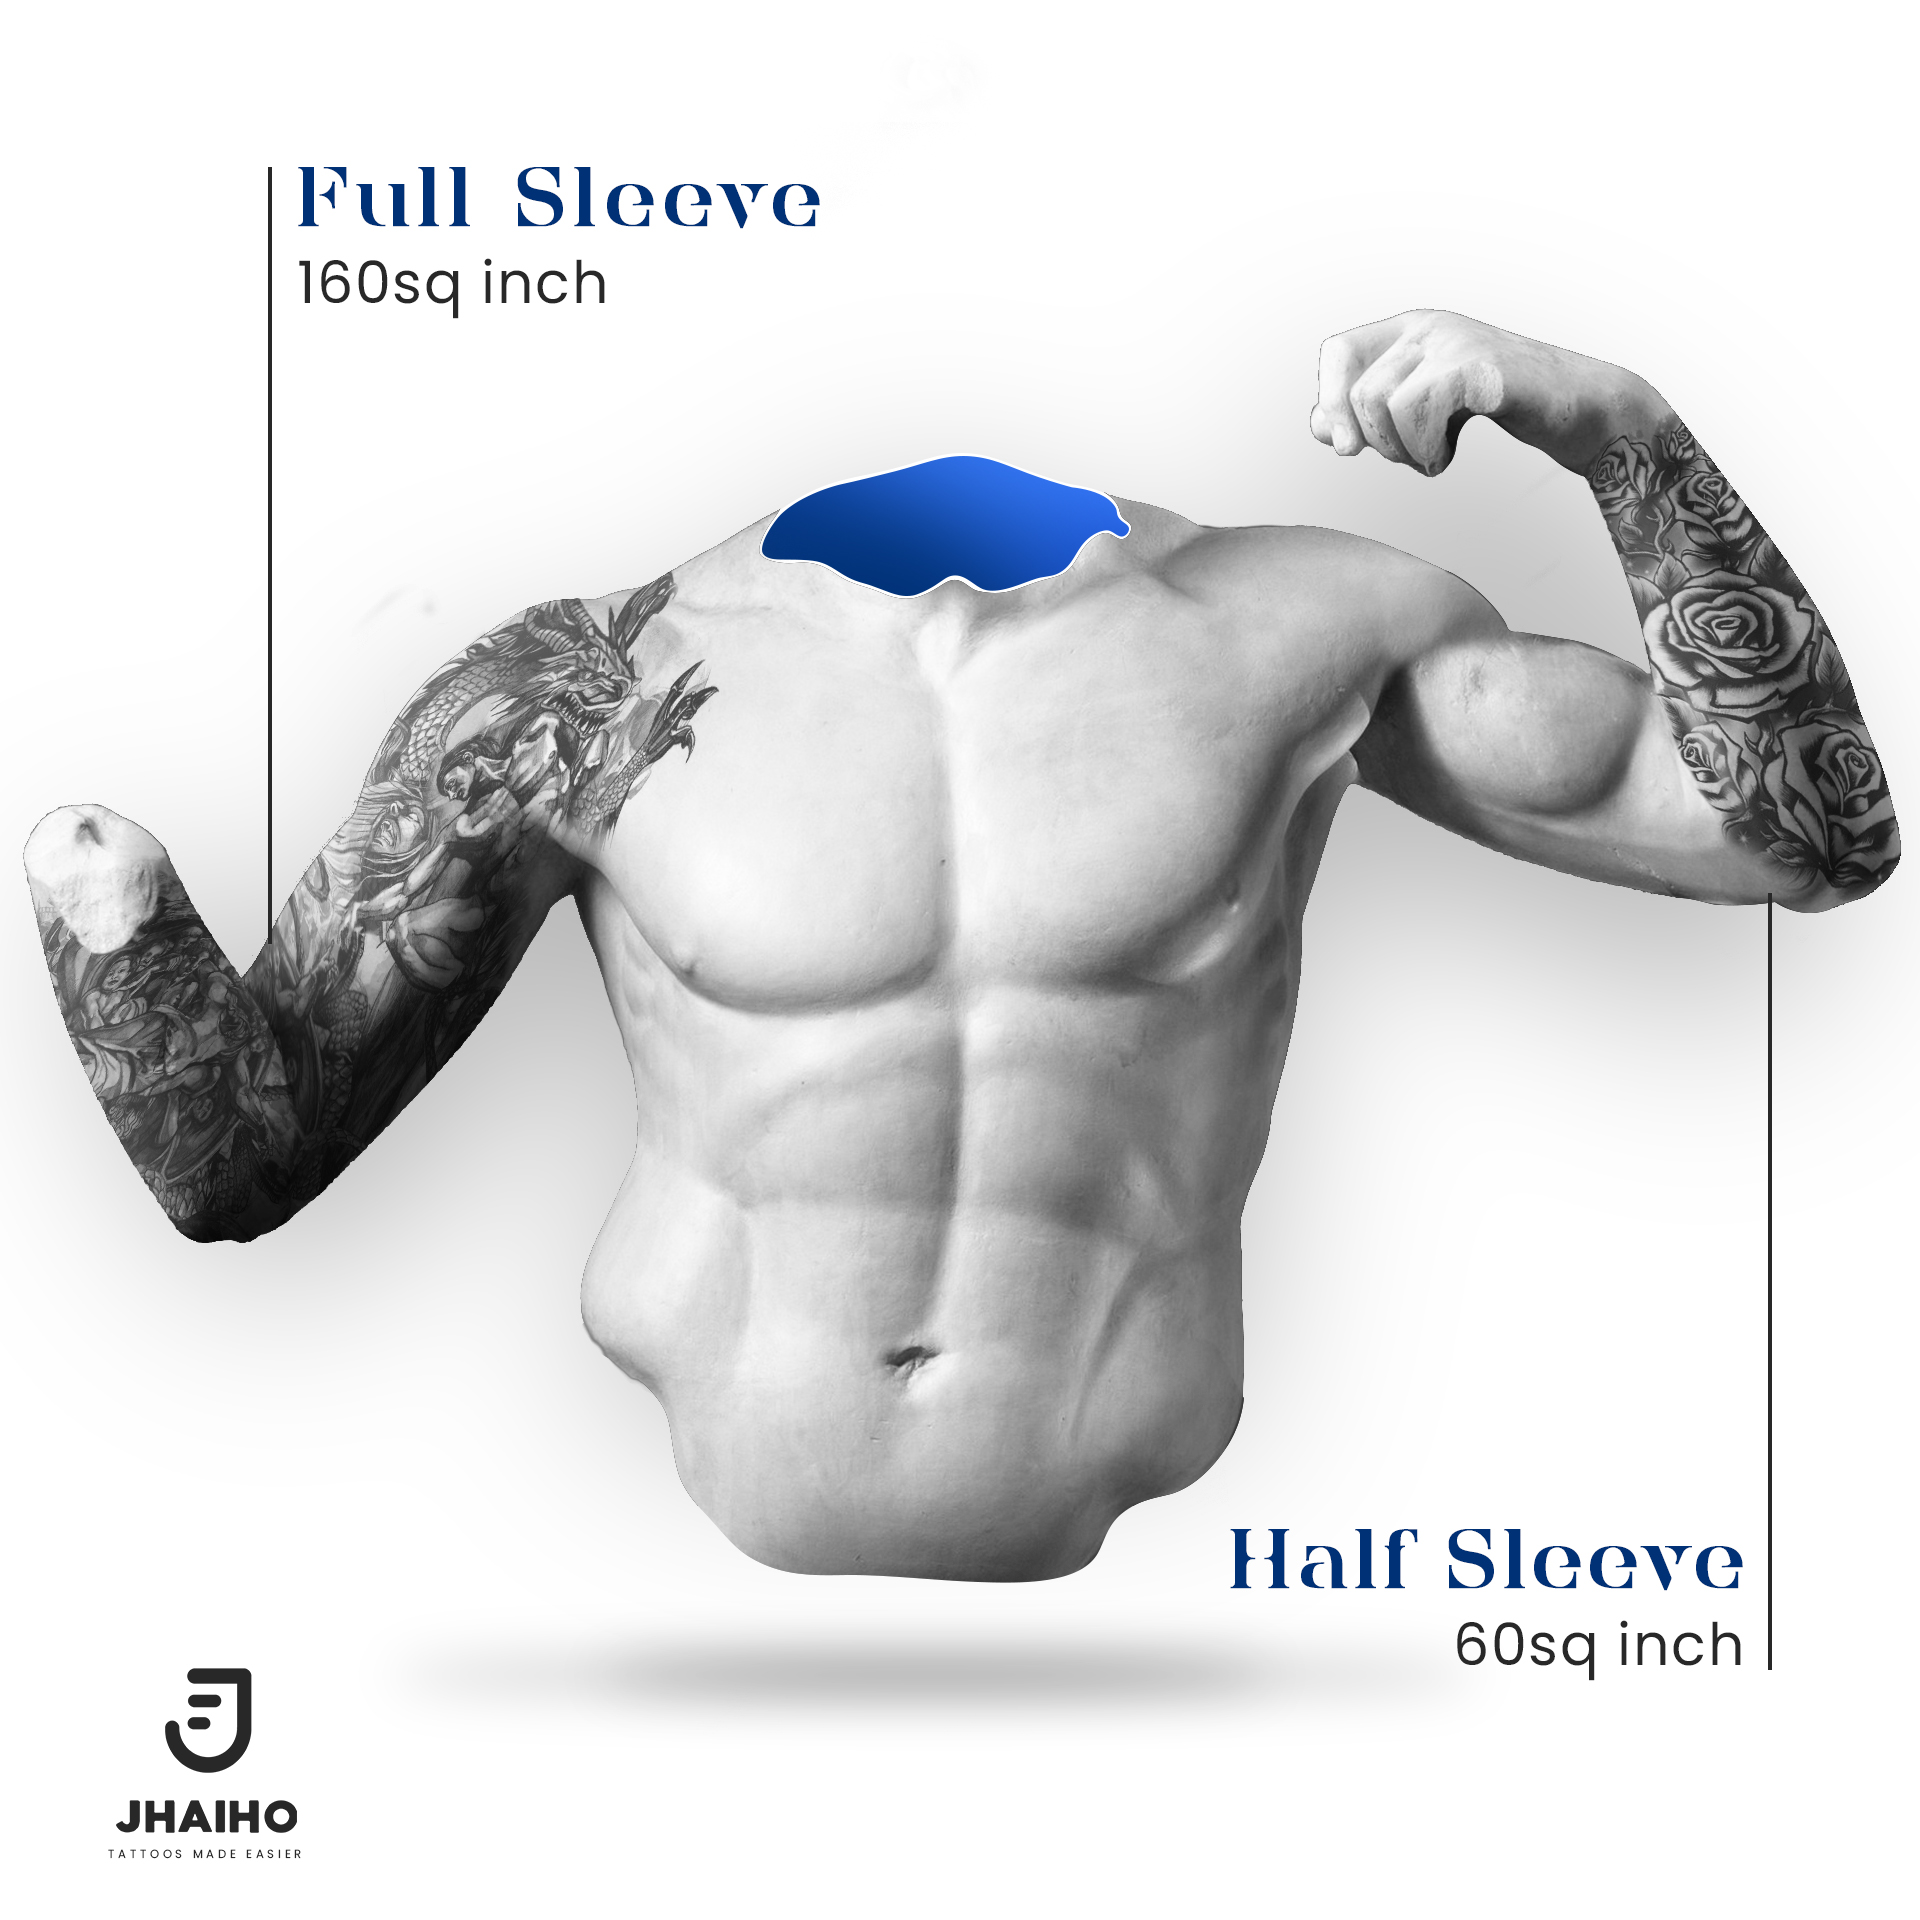 Tattoo sizing guide for full sleeve and half-sleeve